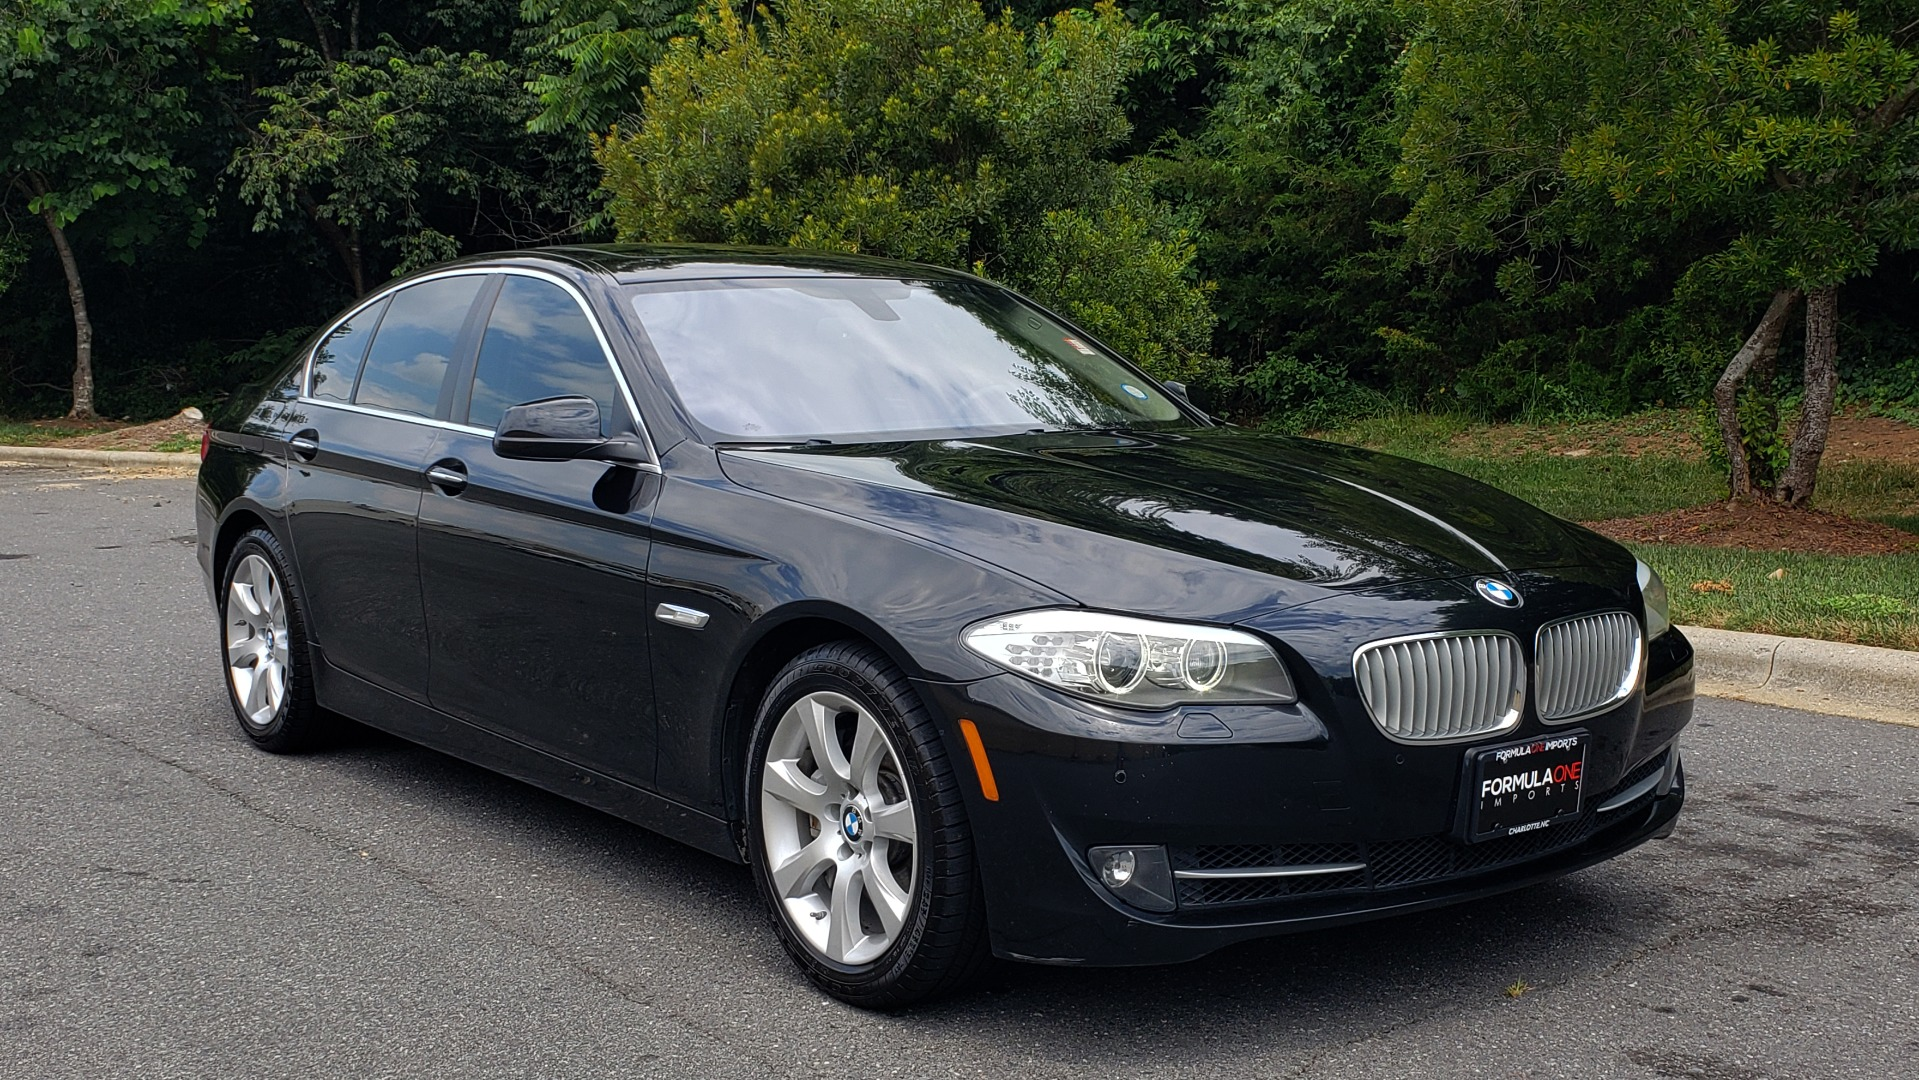 Used 2013 BMW 5 SERIES 550I XDRIVE LUX PKG / EXEC / COLD WTHR / NAV / SUNROOF / REARVIEW for sale Sold at Formula Imports in Charlotte NC 28227 4